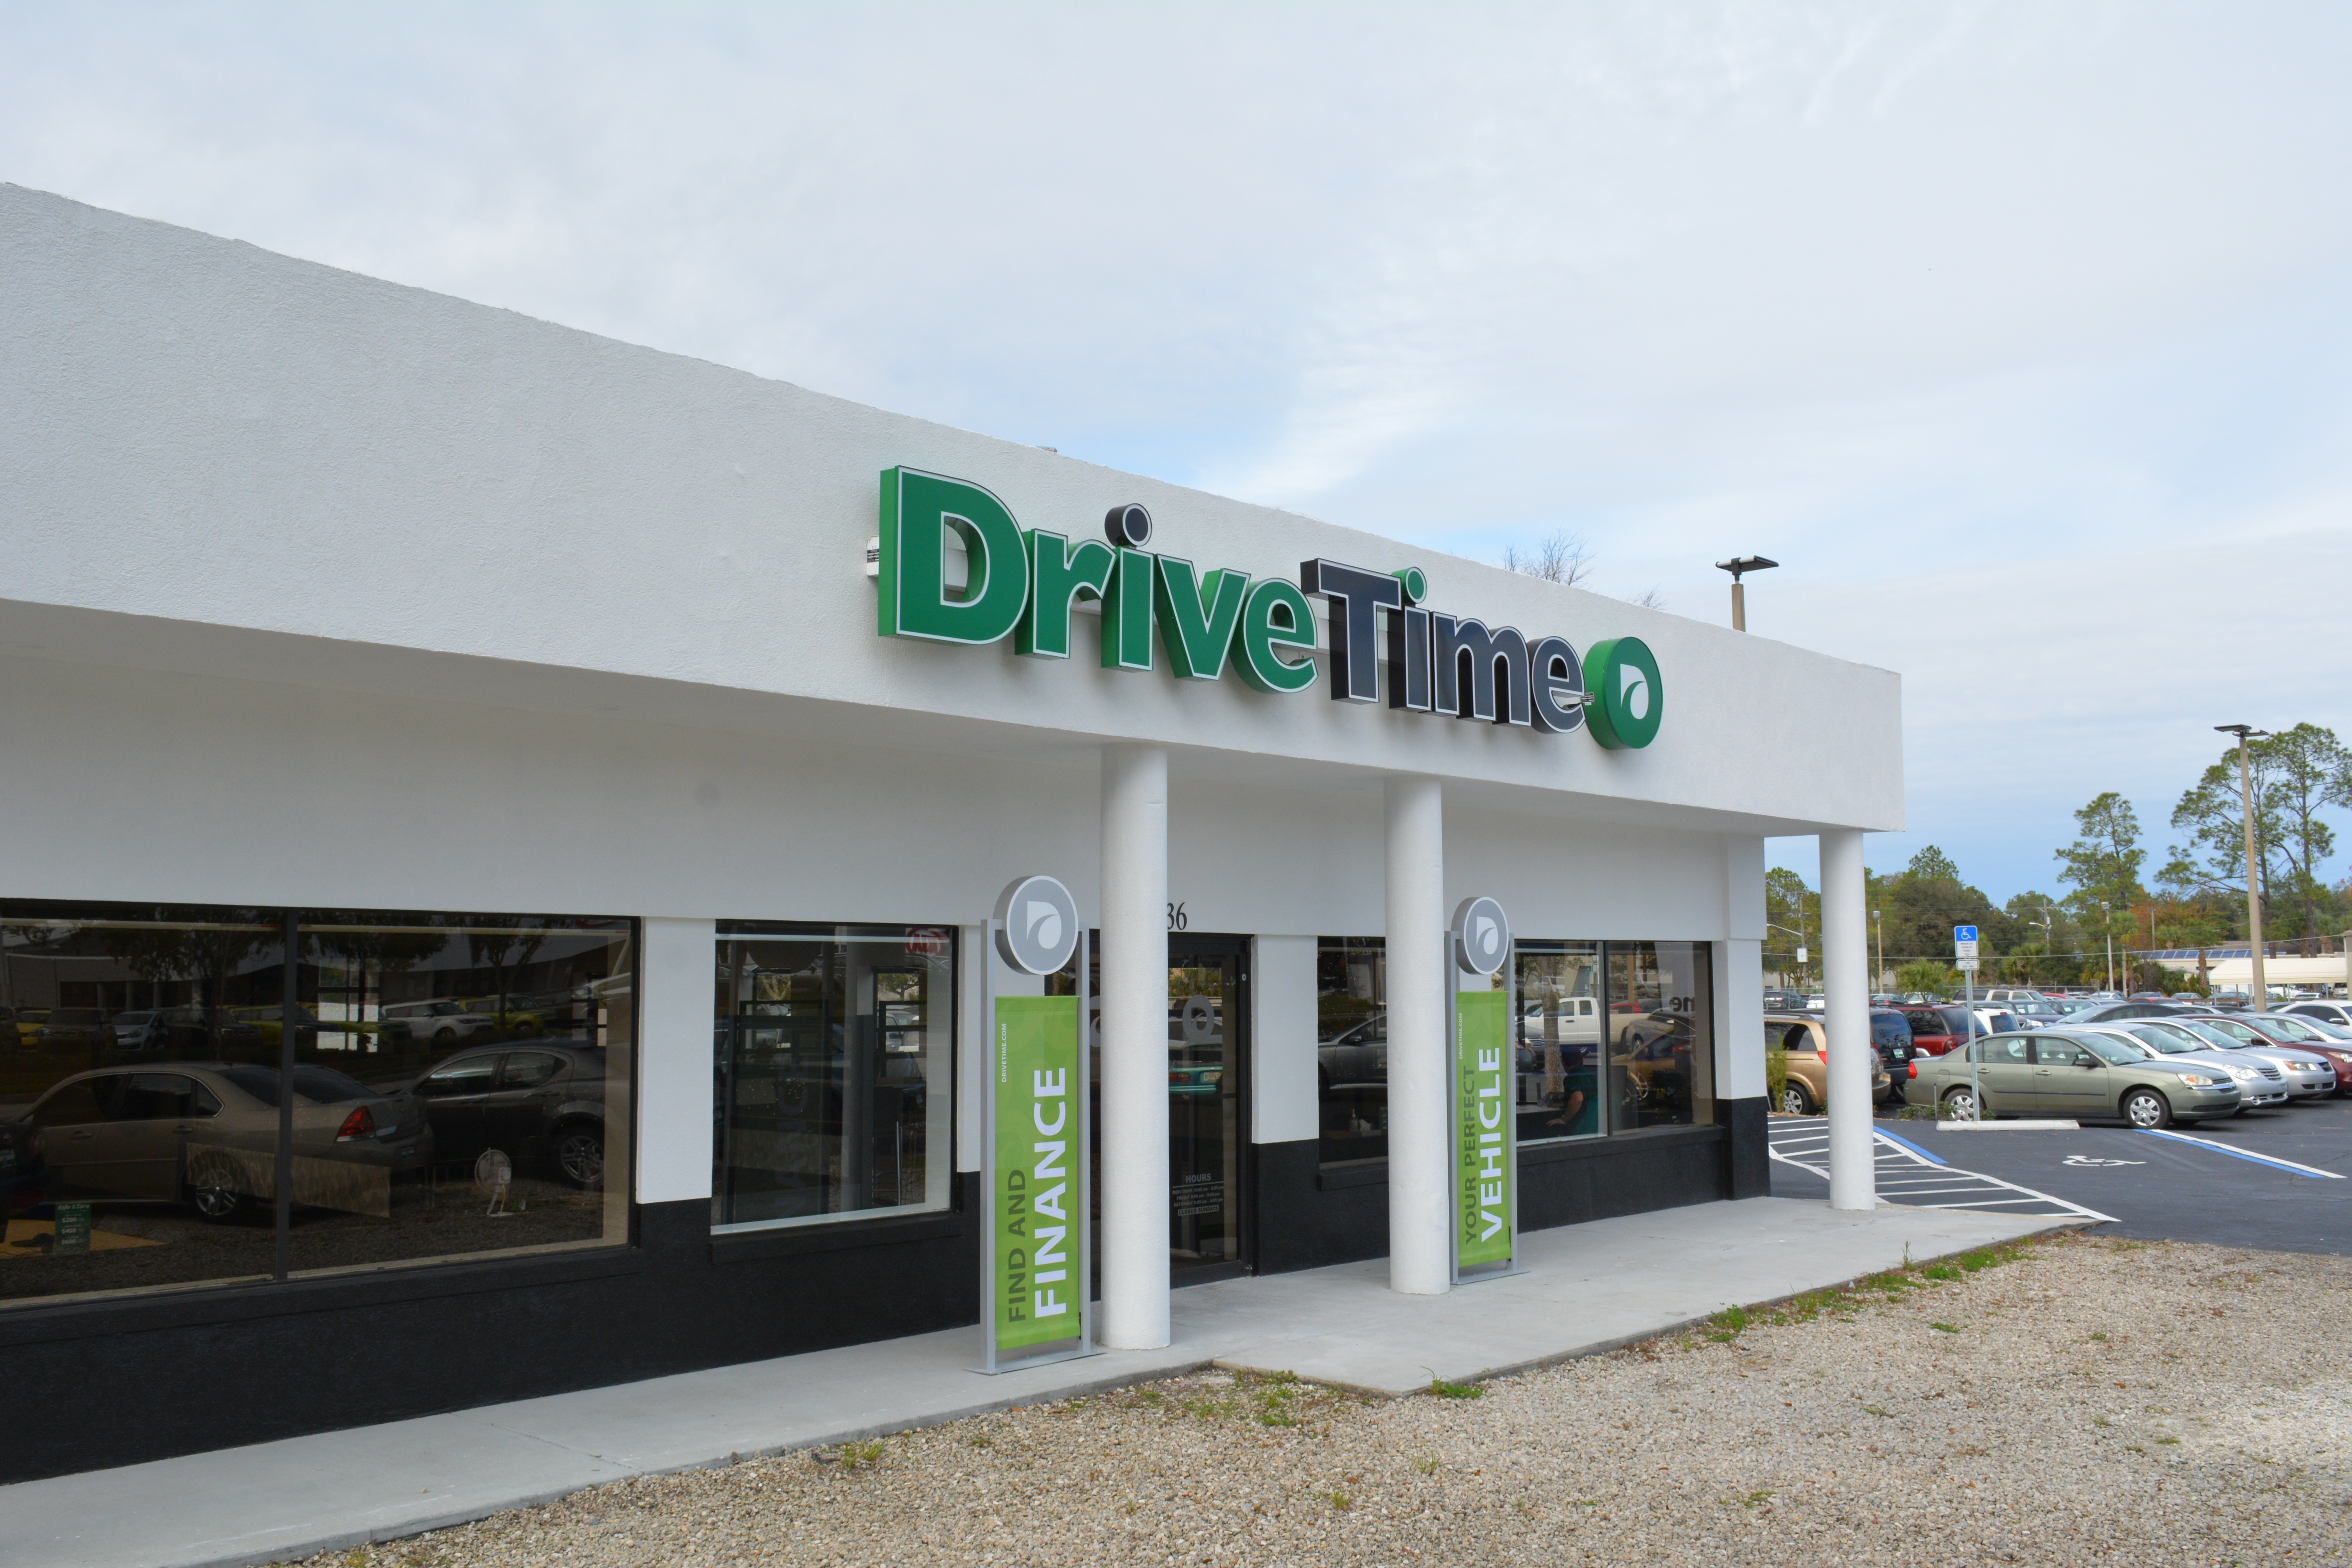 drivetime used cars coupons near me in gainesville 8coupons. Black Bedroom Furniture Sets. Home Design Ideas